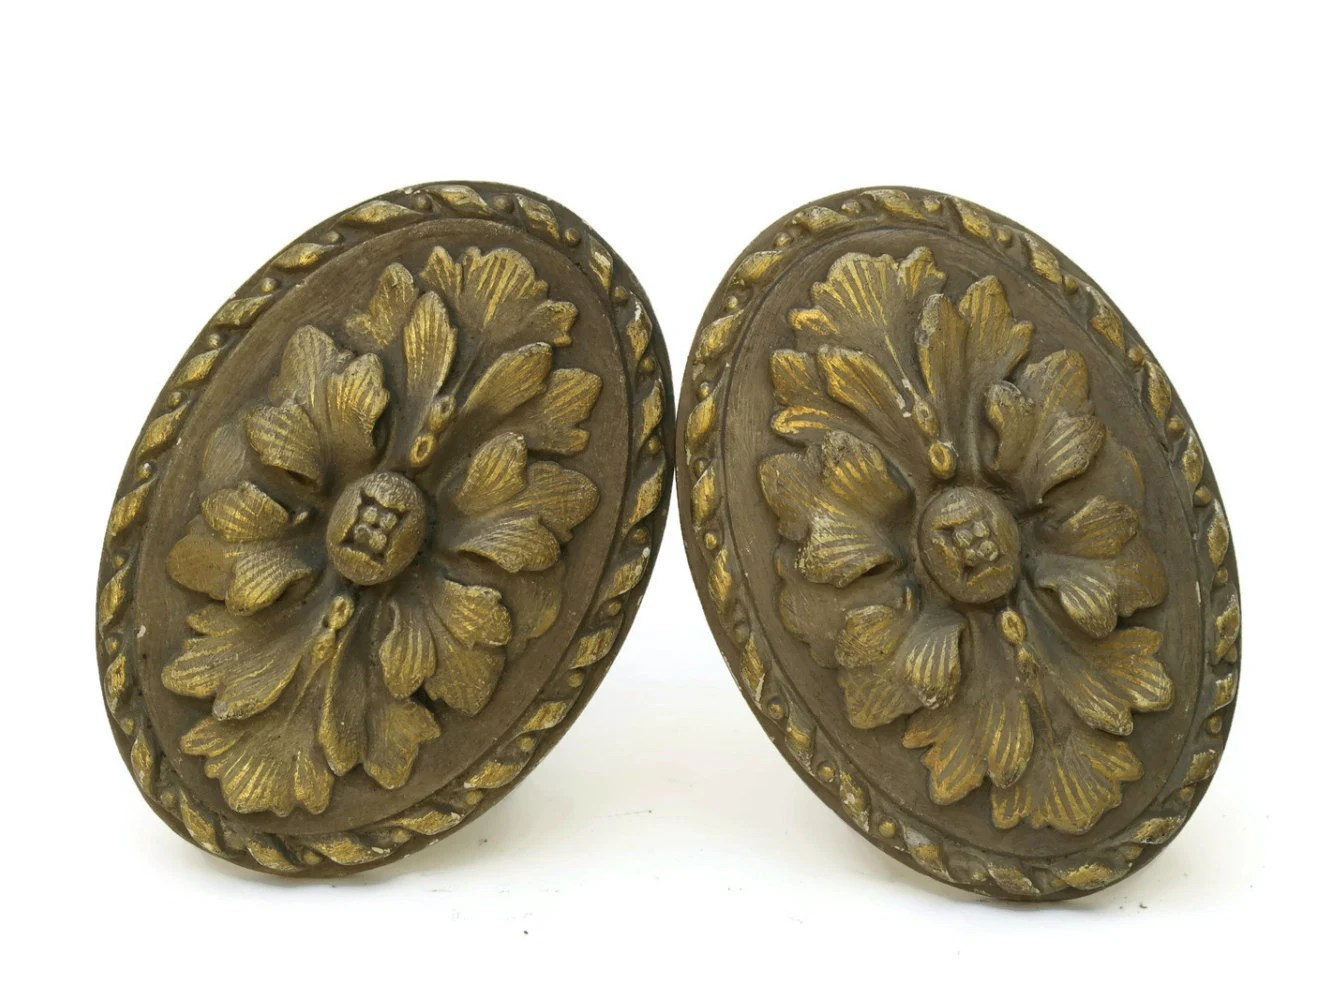 Antique Bronze Curtain Tie Backs 3x Antique French Gilt Bronze Curtain Tie Backs Classics Life